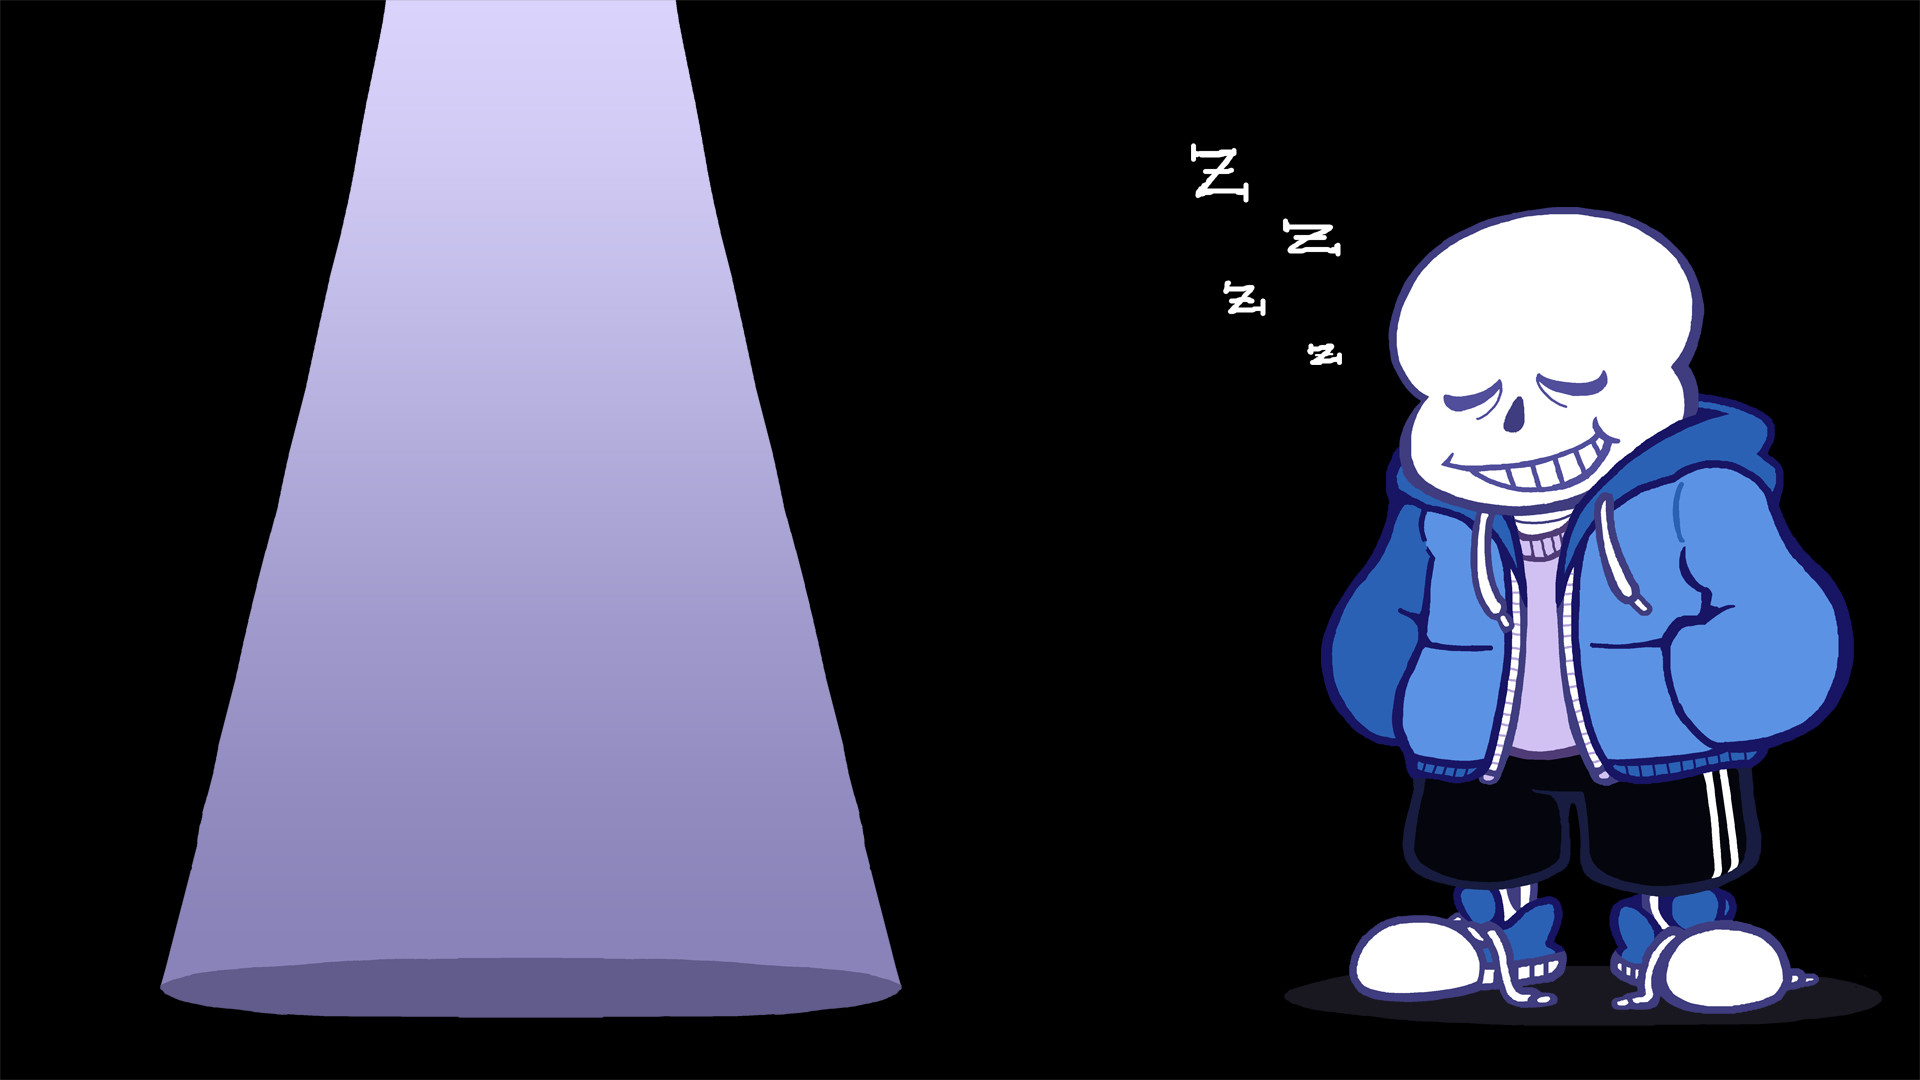 1920x1080 UNDERTALE-The Game images Sans Wallpaper HD wallpaper and background photos